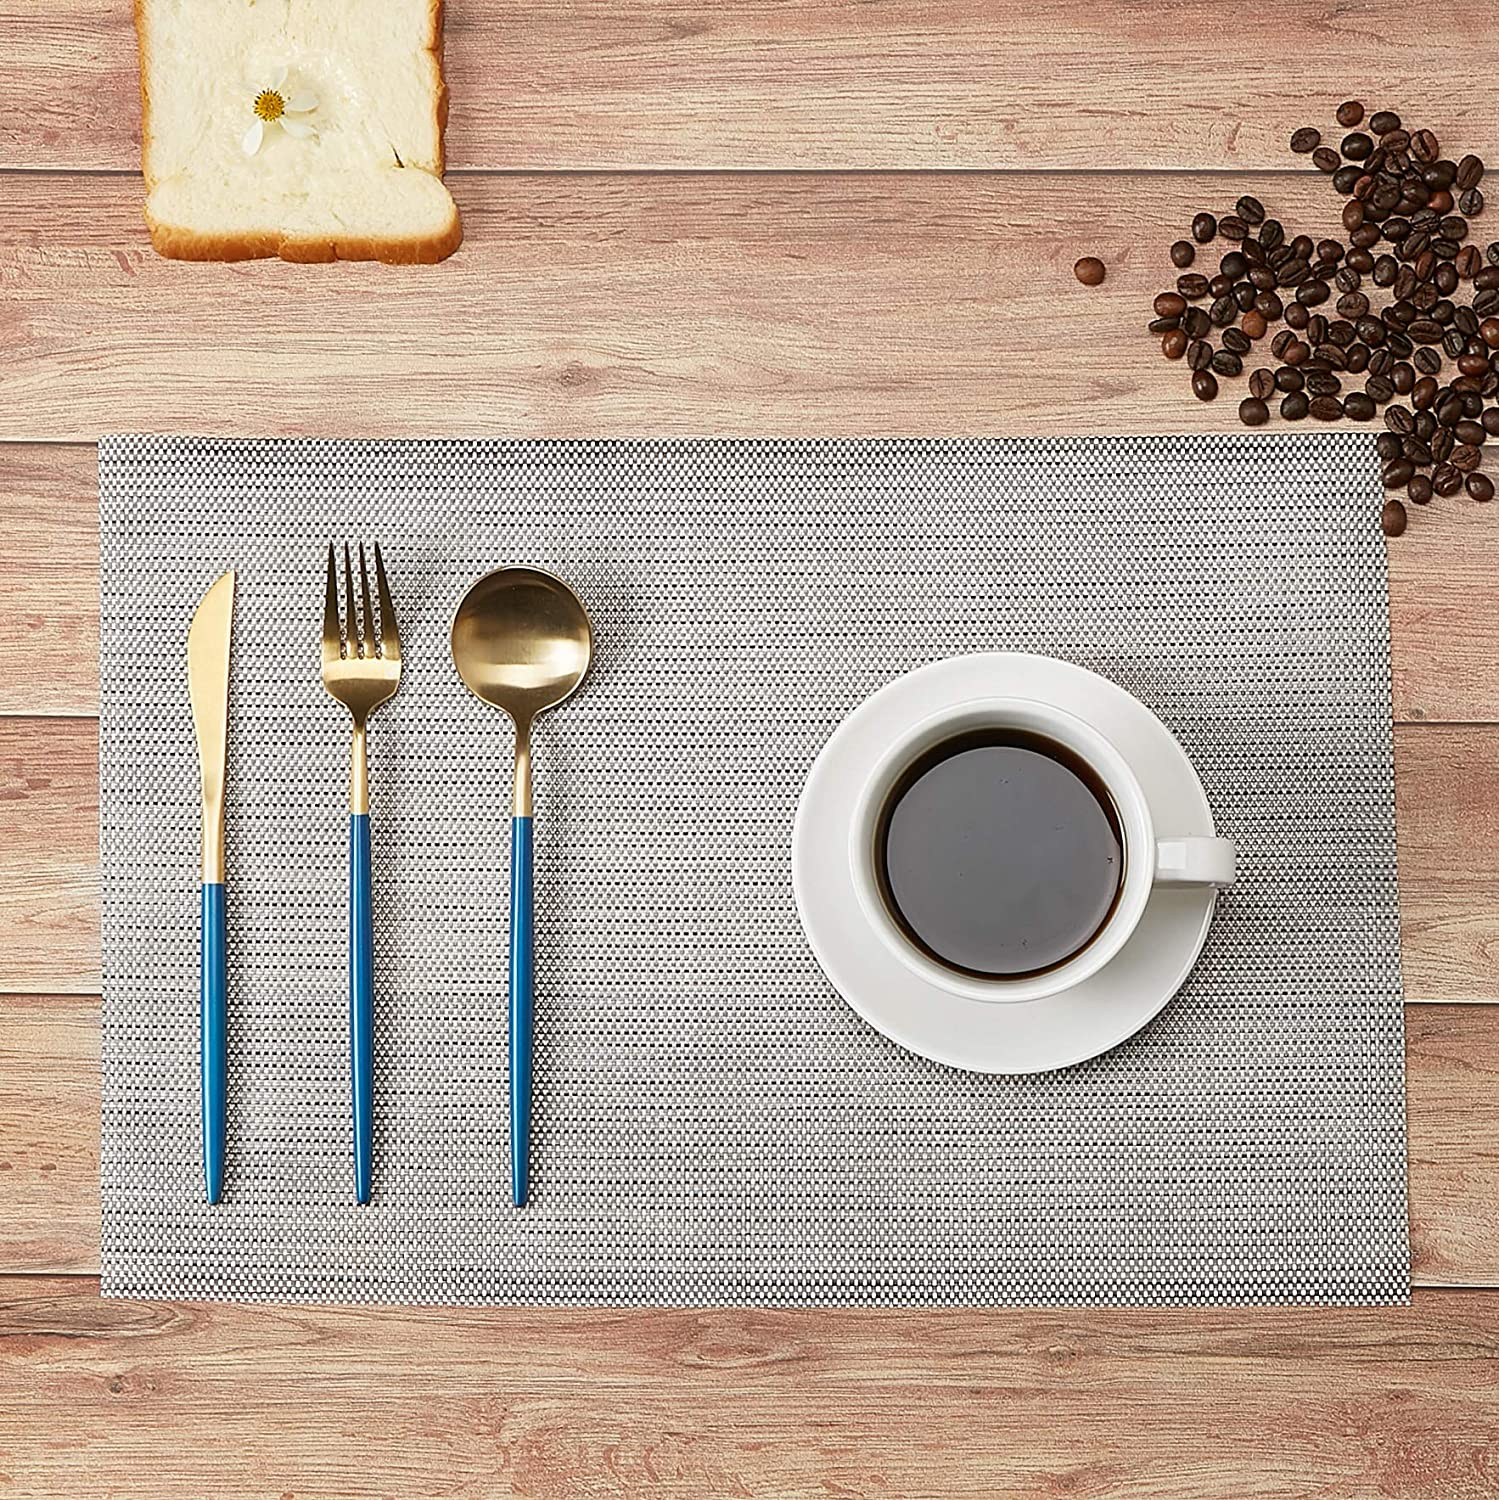 DOLOPL White Place Mats Waterproof Placemats Washable/&Wipeable Table Mats Set of 6 for Dining Table Kitchen Reataurant Table